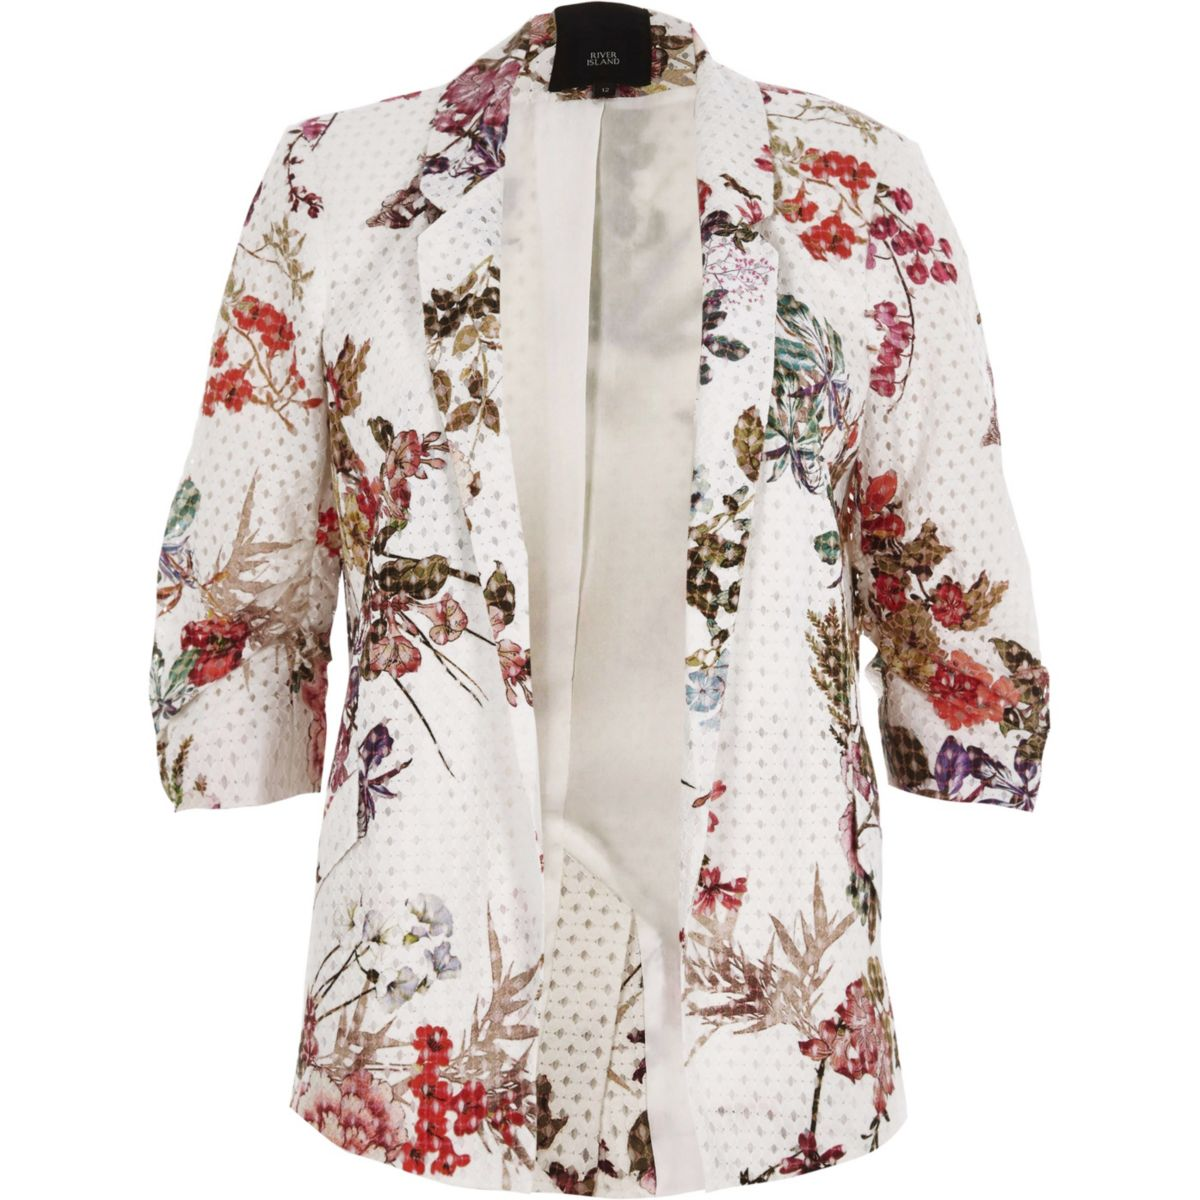 White floral print lace ruched sleeve blazer